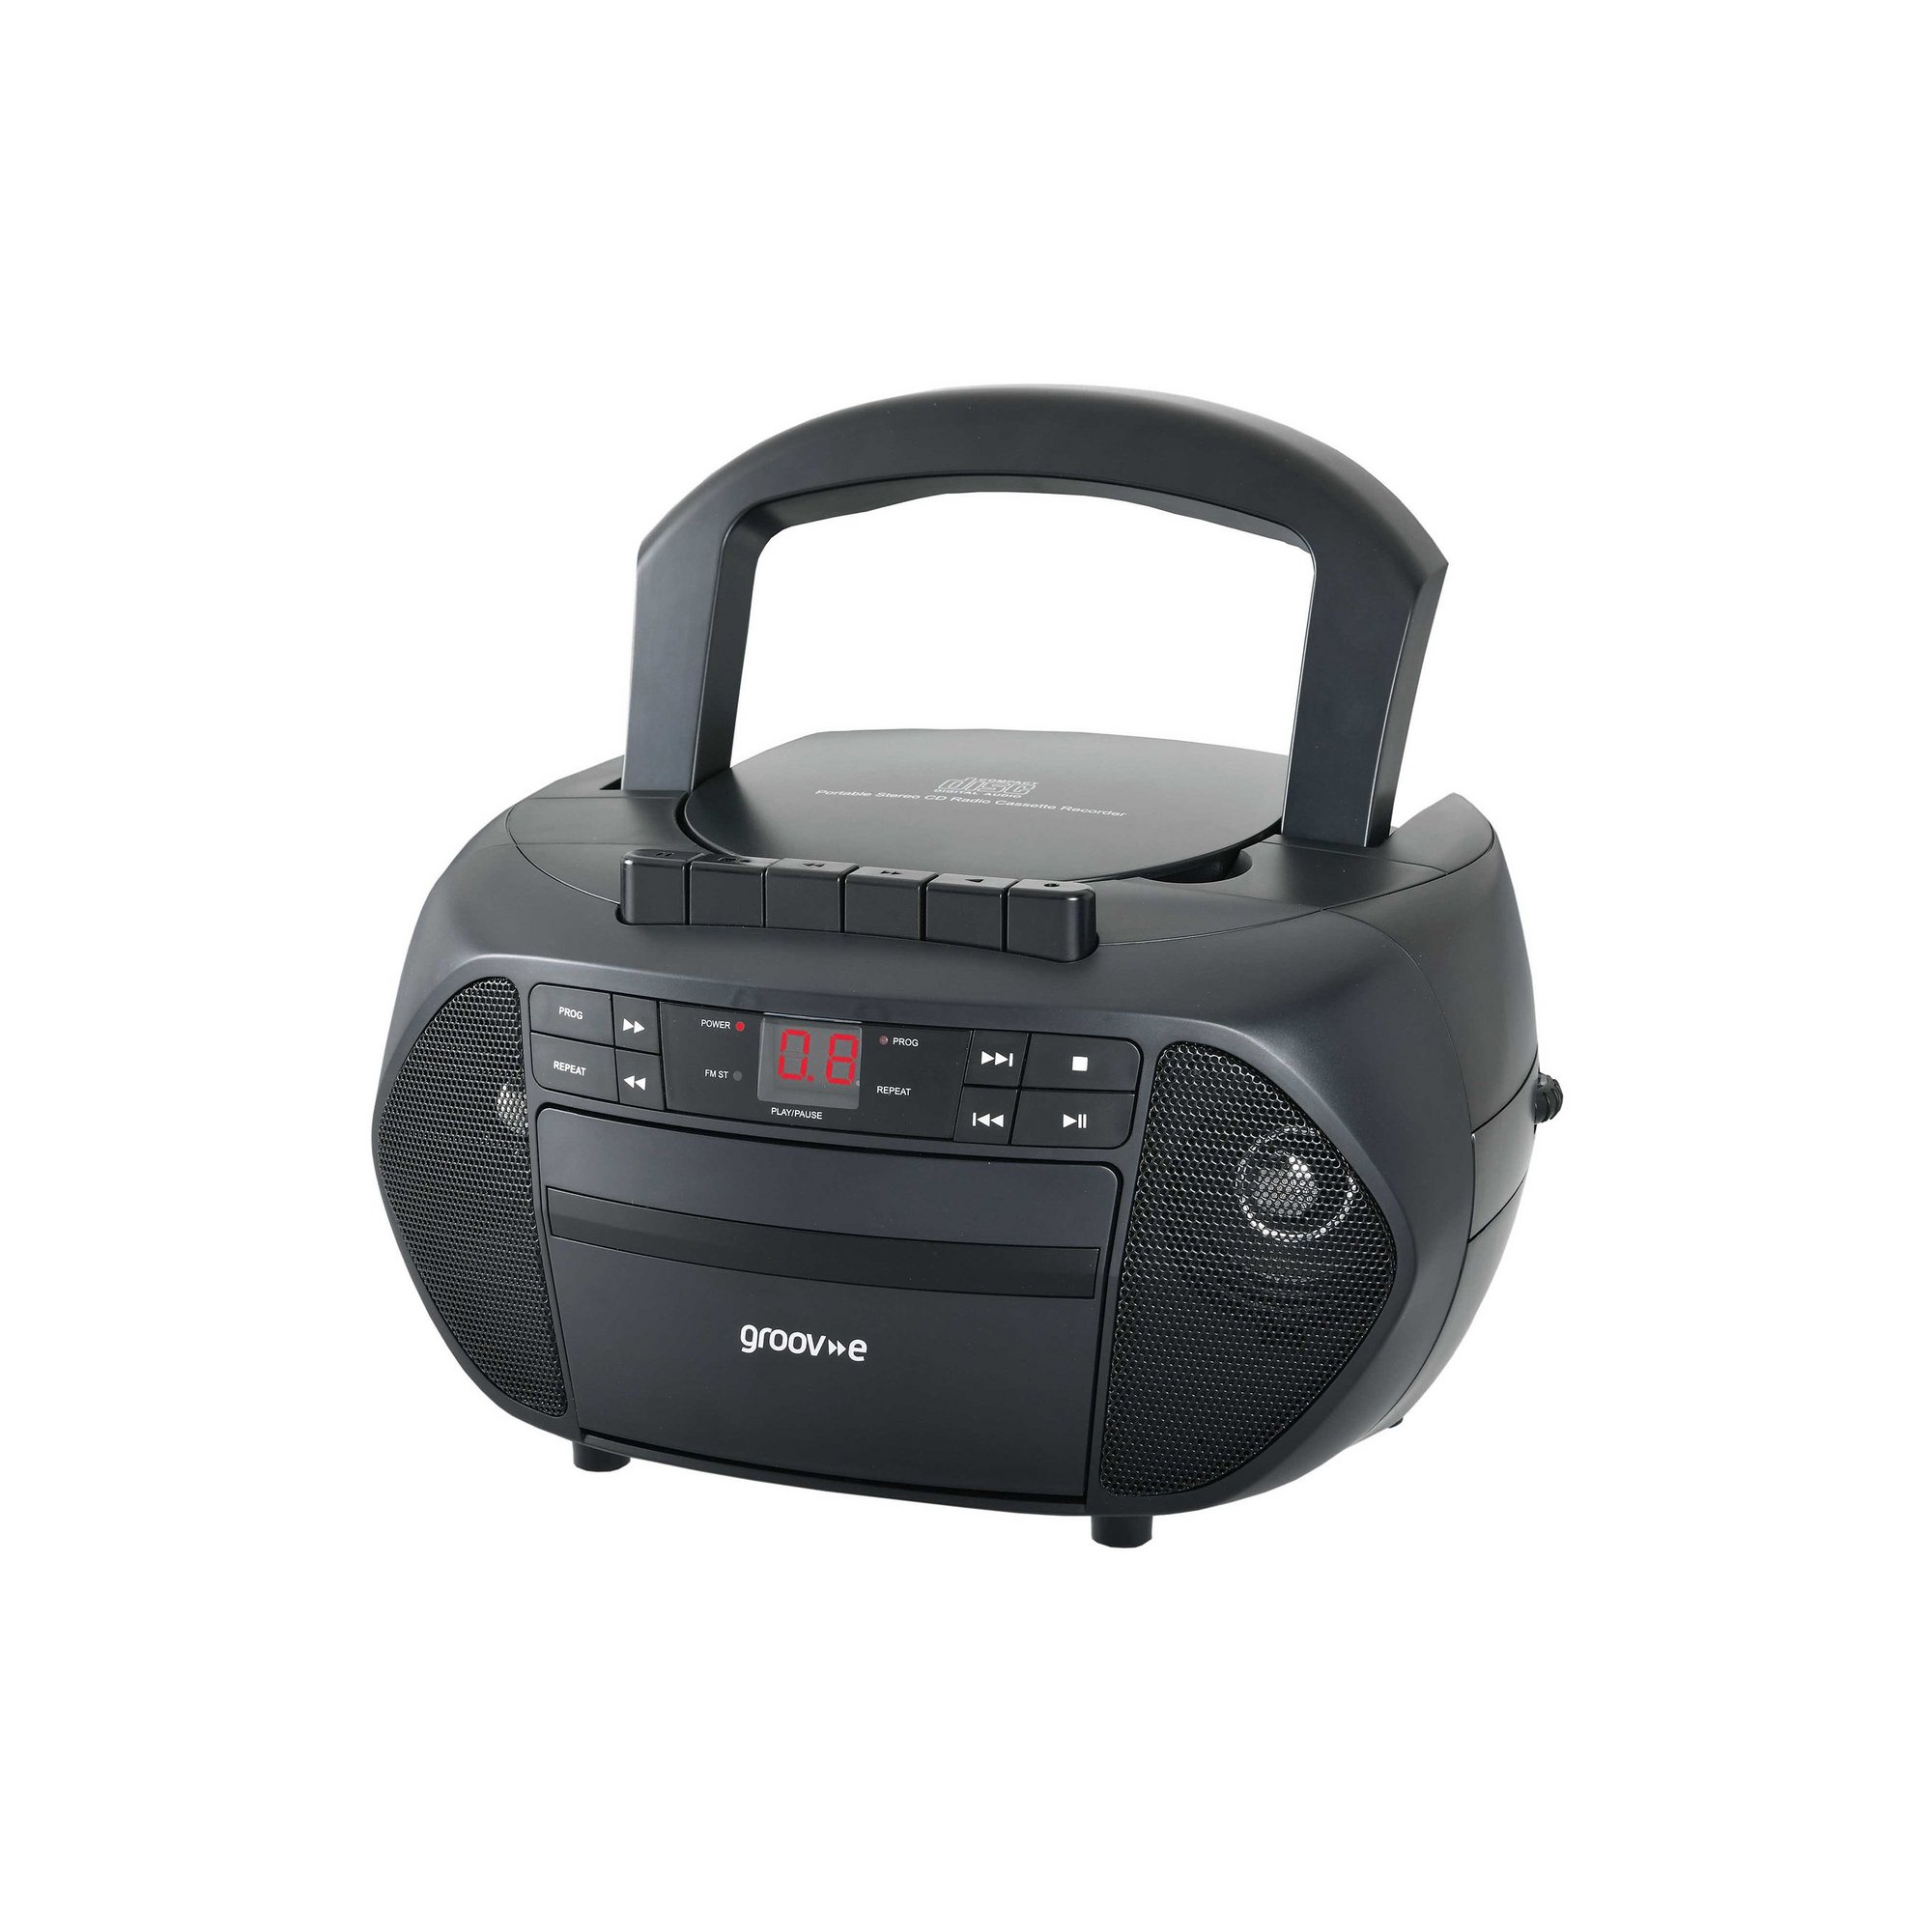 Image of Groov-e GVPS833BK Traditional Black Boombox